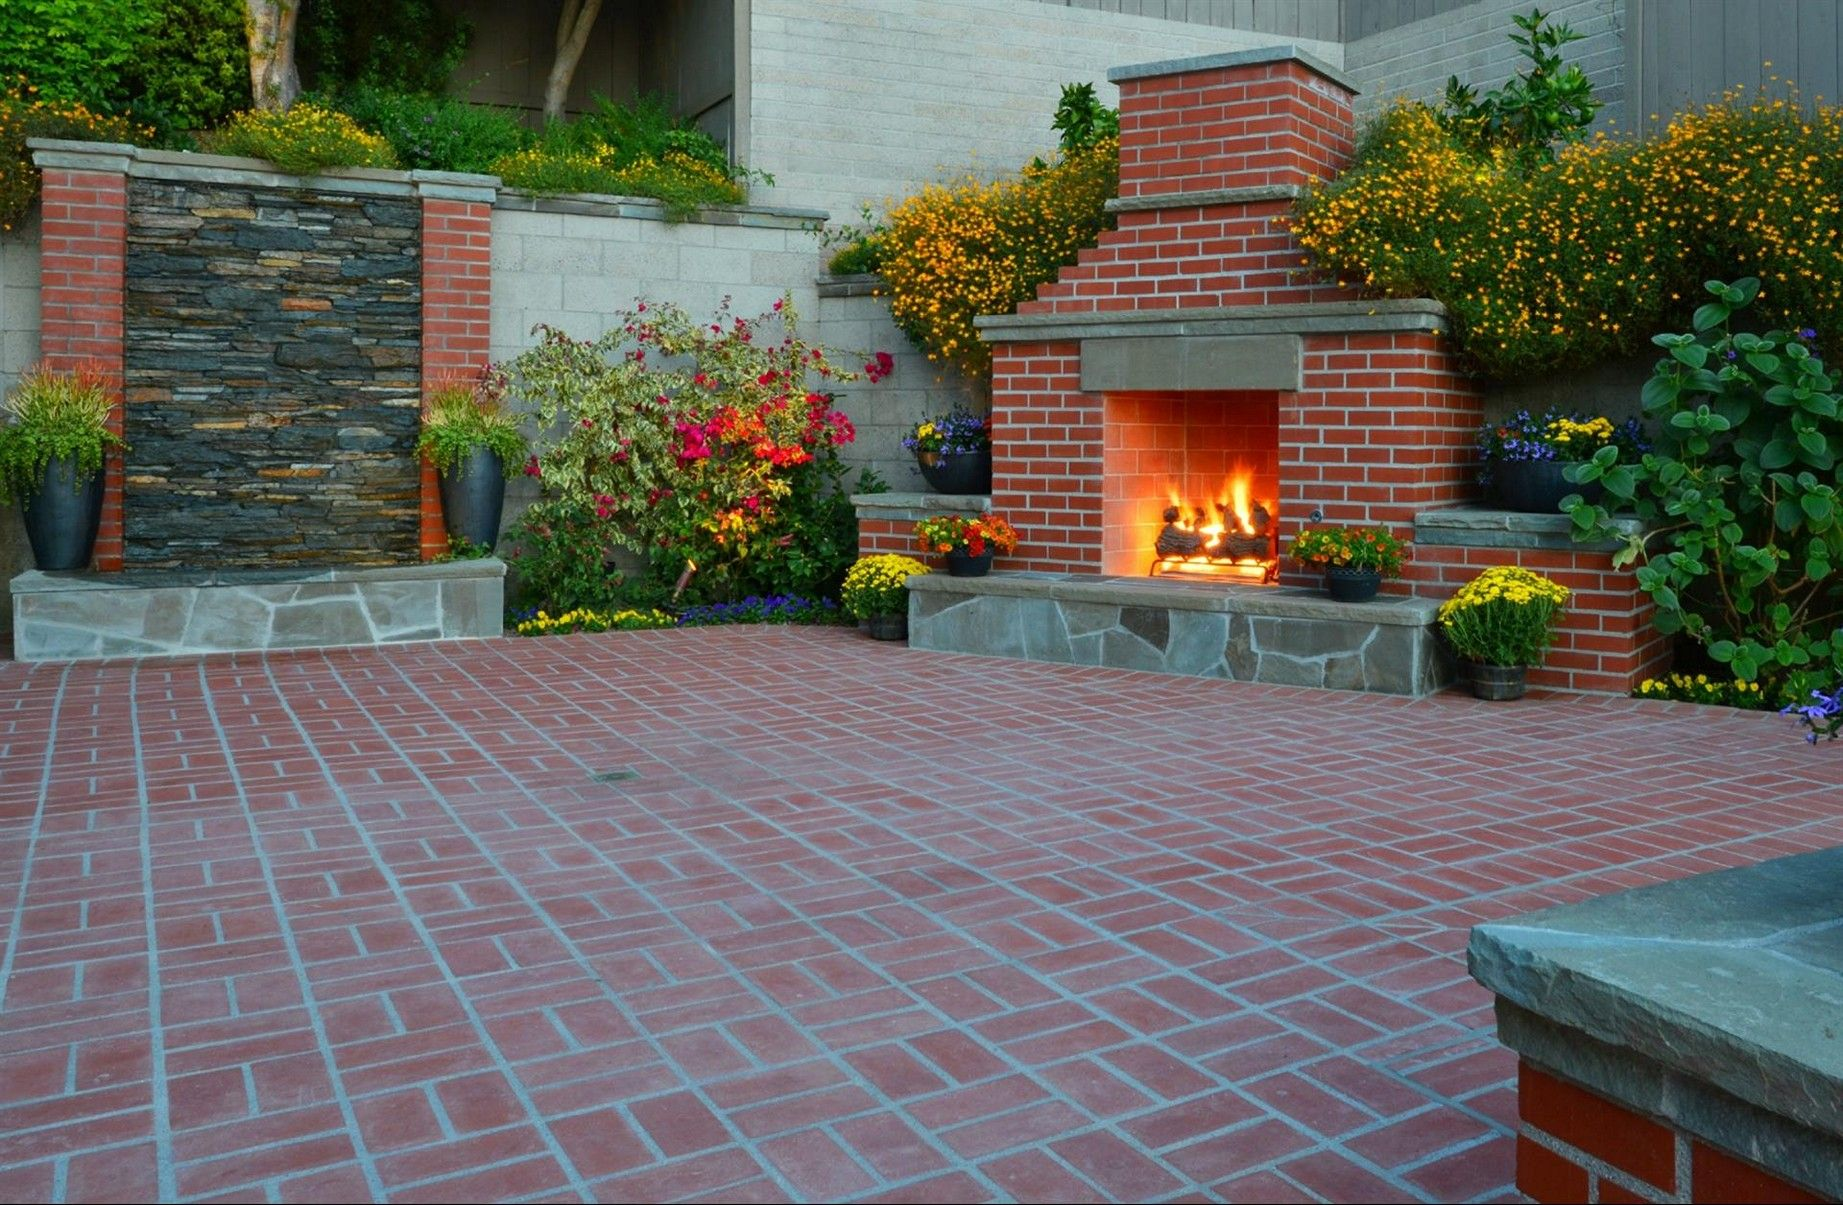 Red Brick Patio Designs | Tyres2c on Red Paver Patio Ideas id=87376